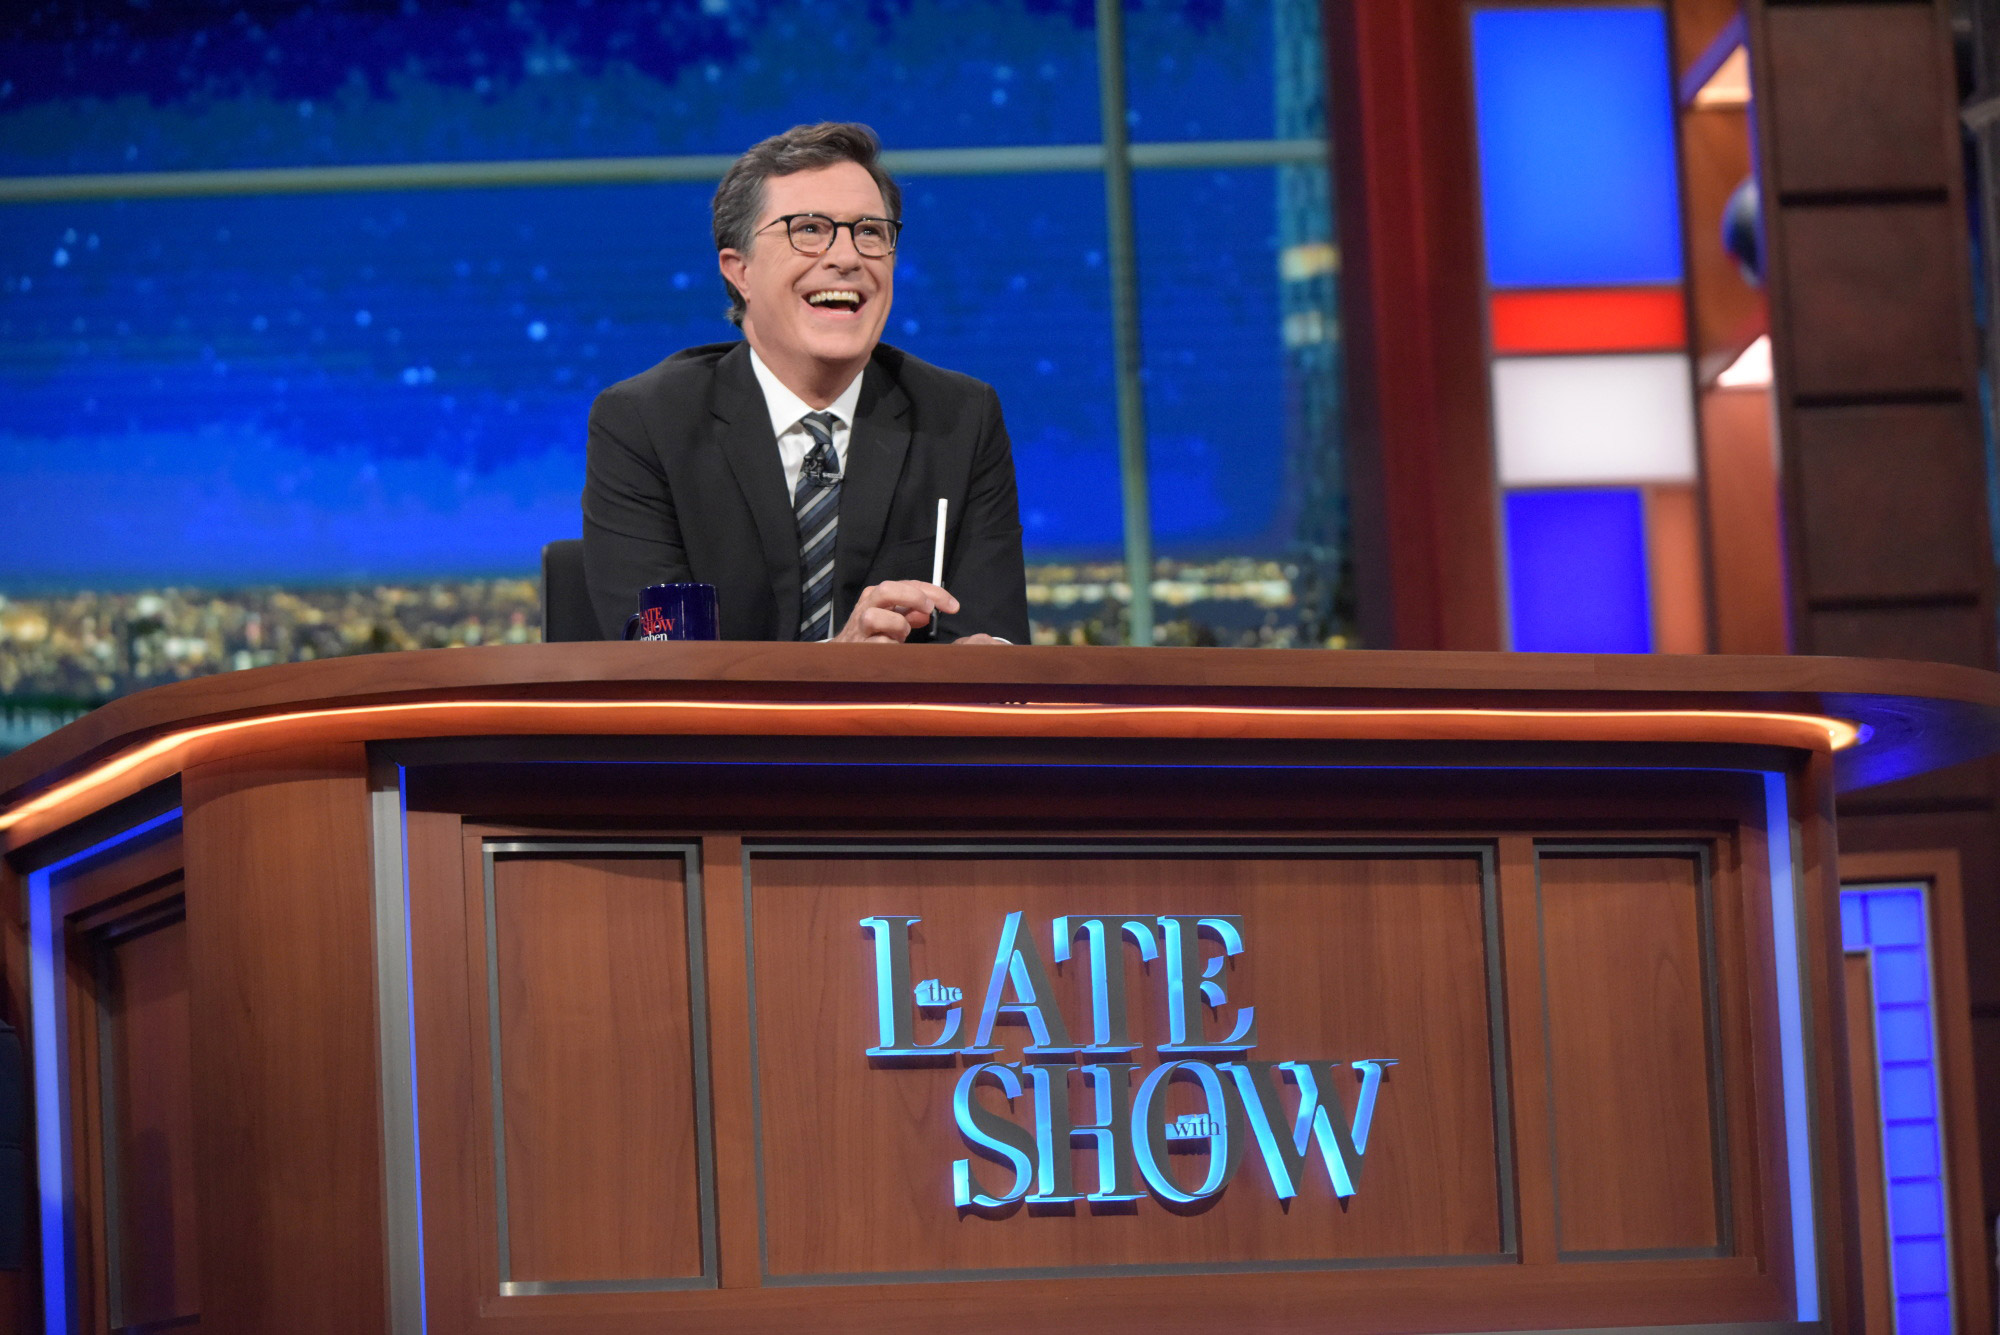 The Late Show  with Stephen Colbert airing live in New York.